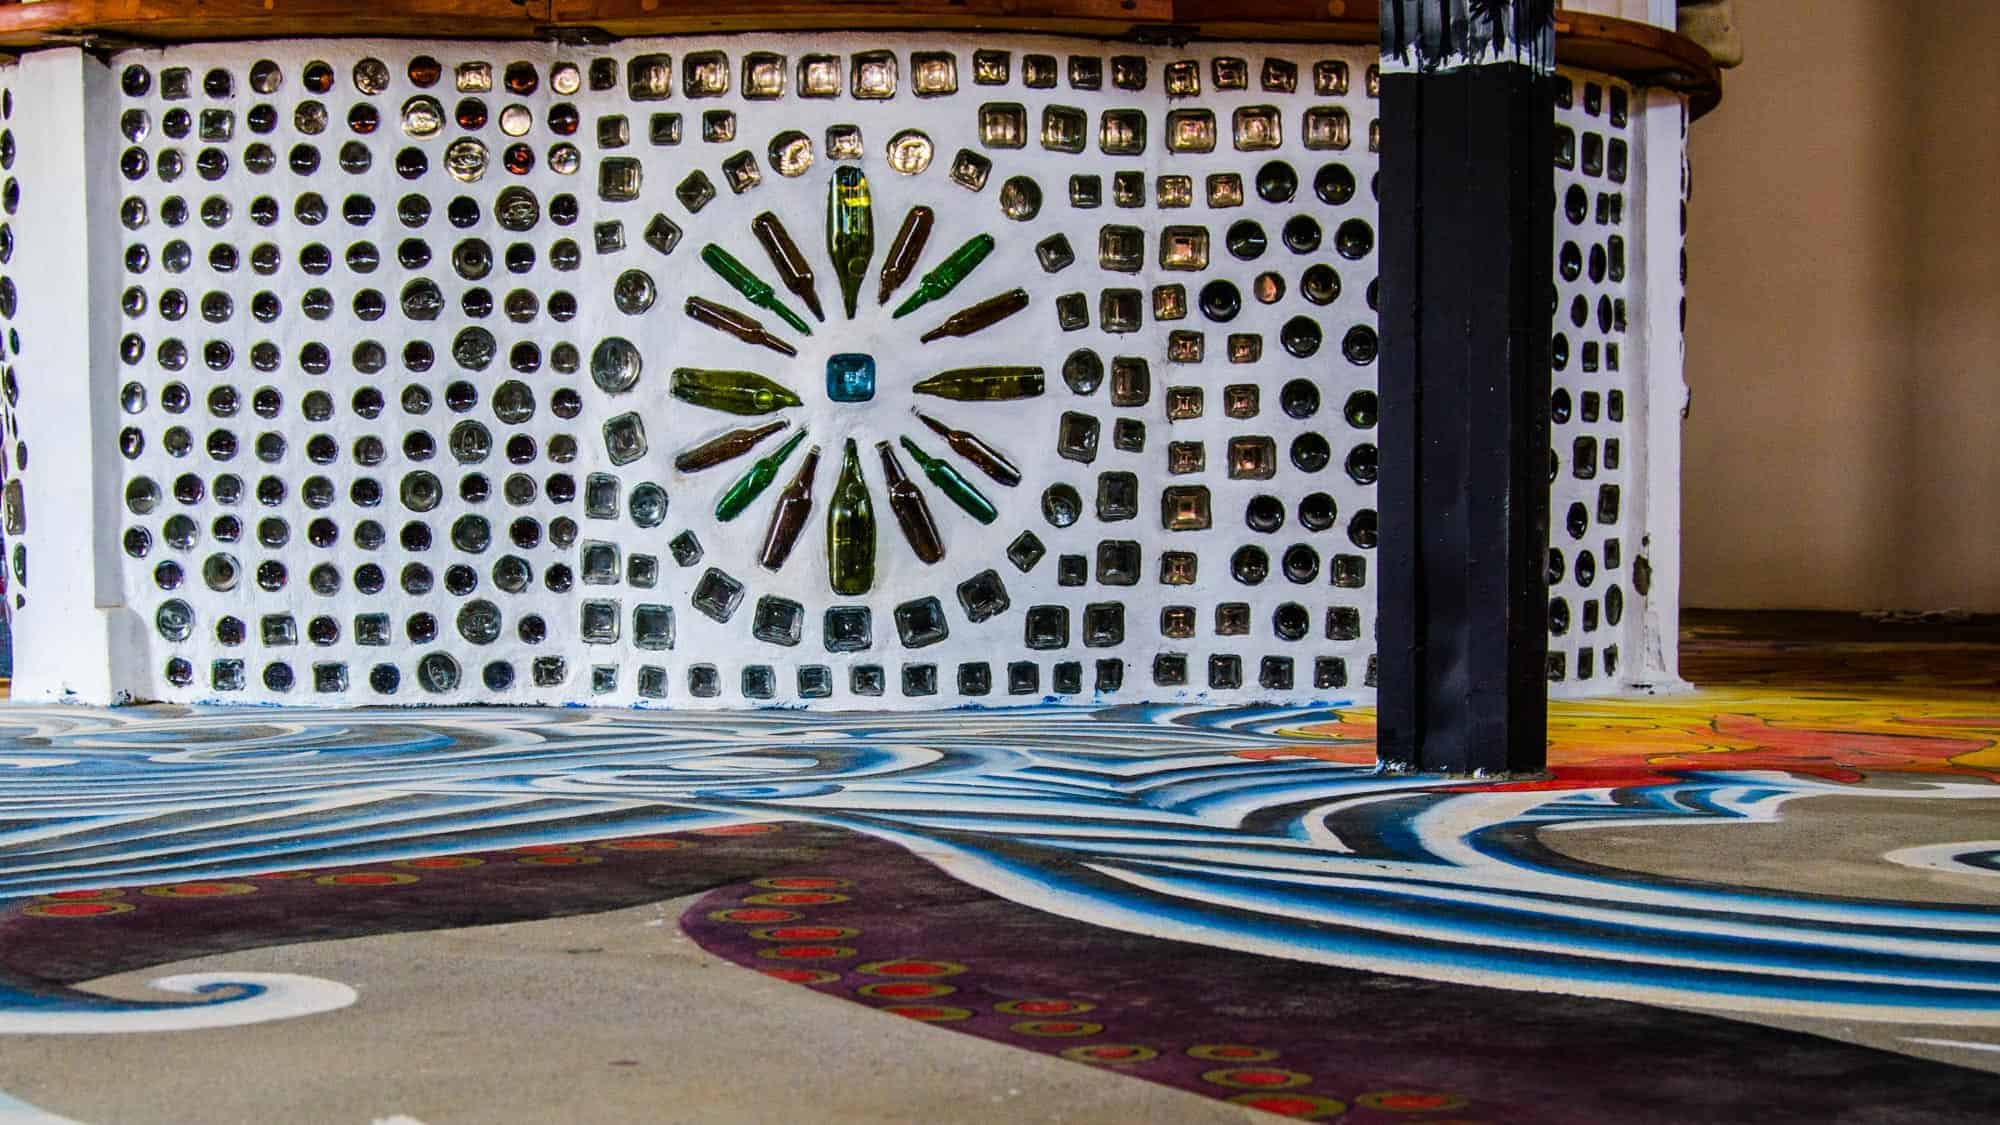 Recycled bottles were used to create art and structure for the bar.